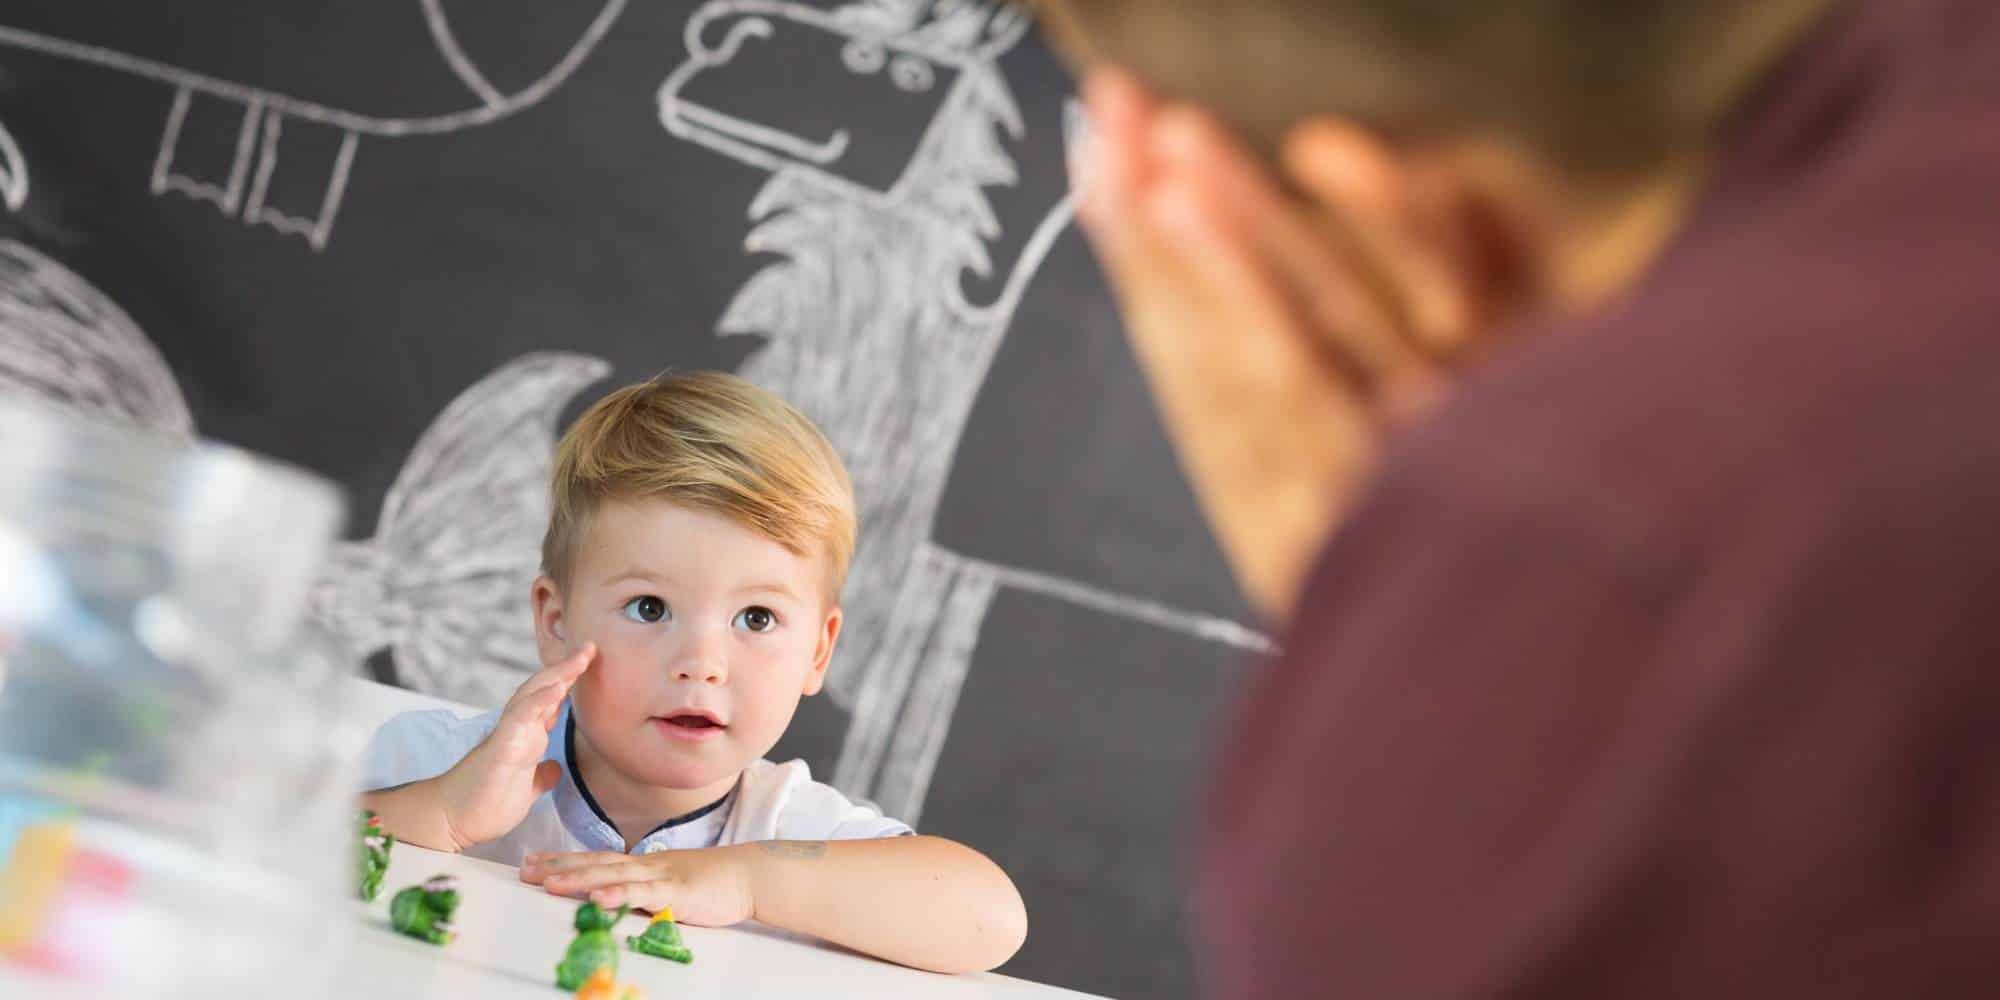 Child looking at teacher with small toys on table between them